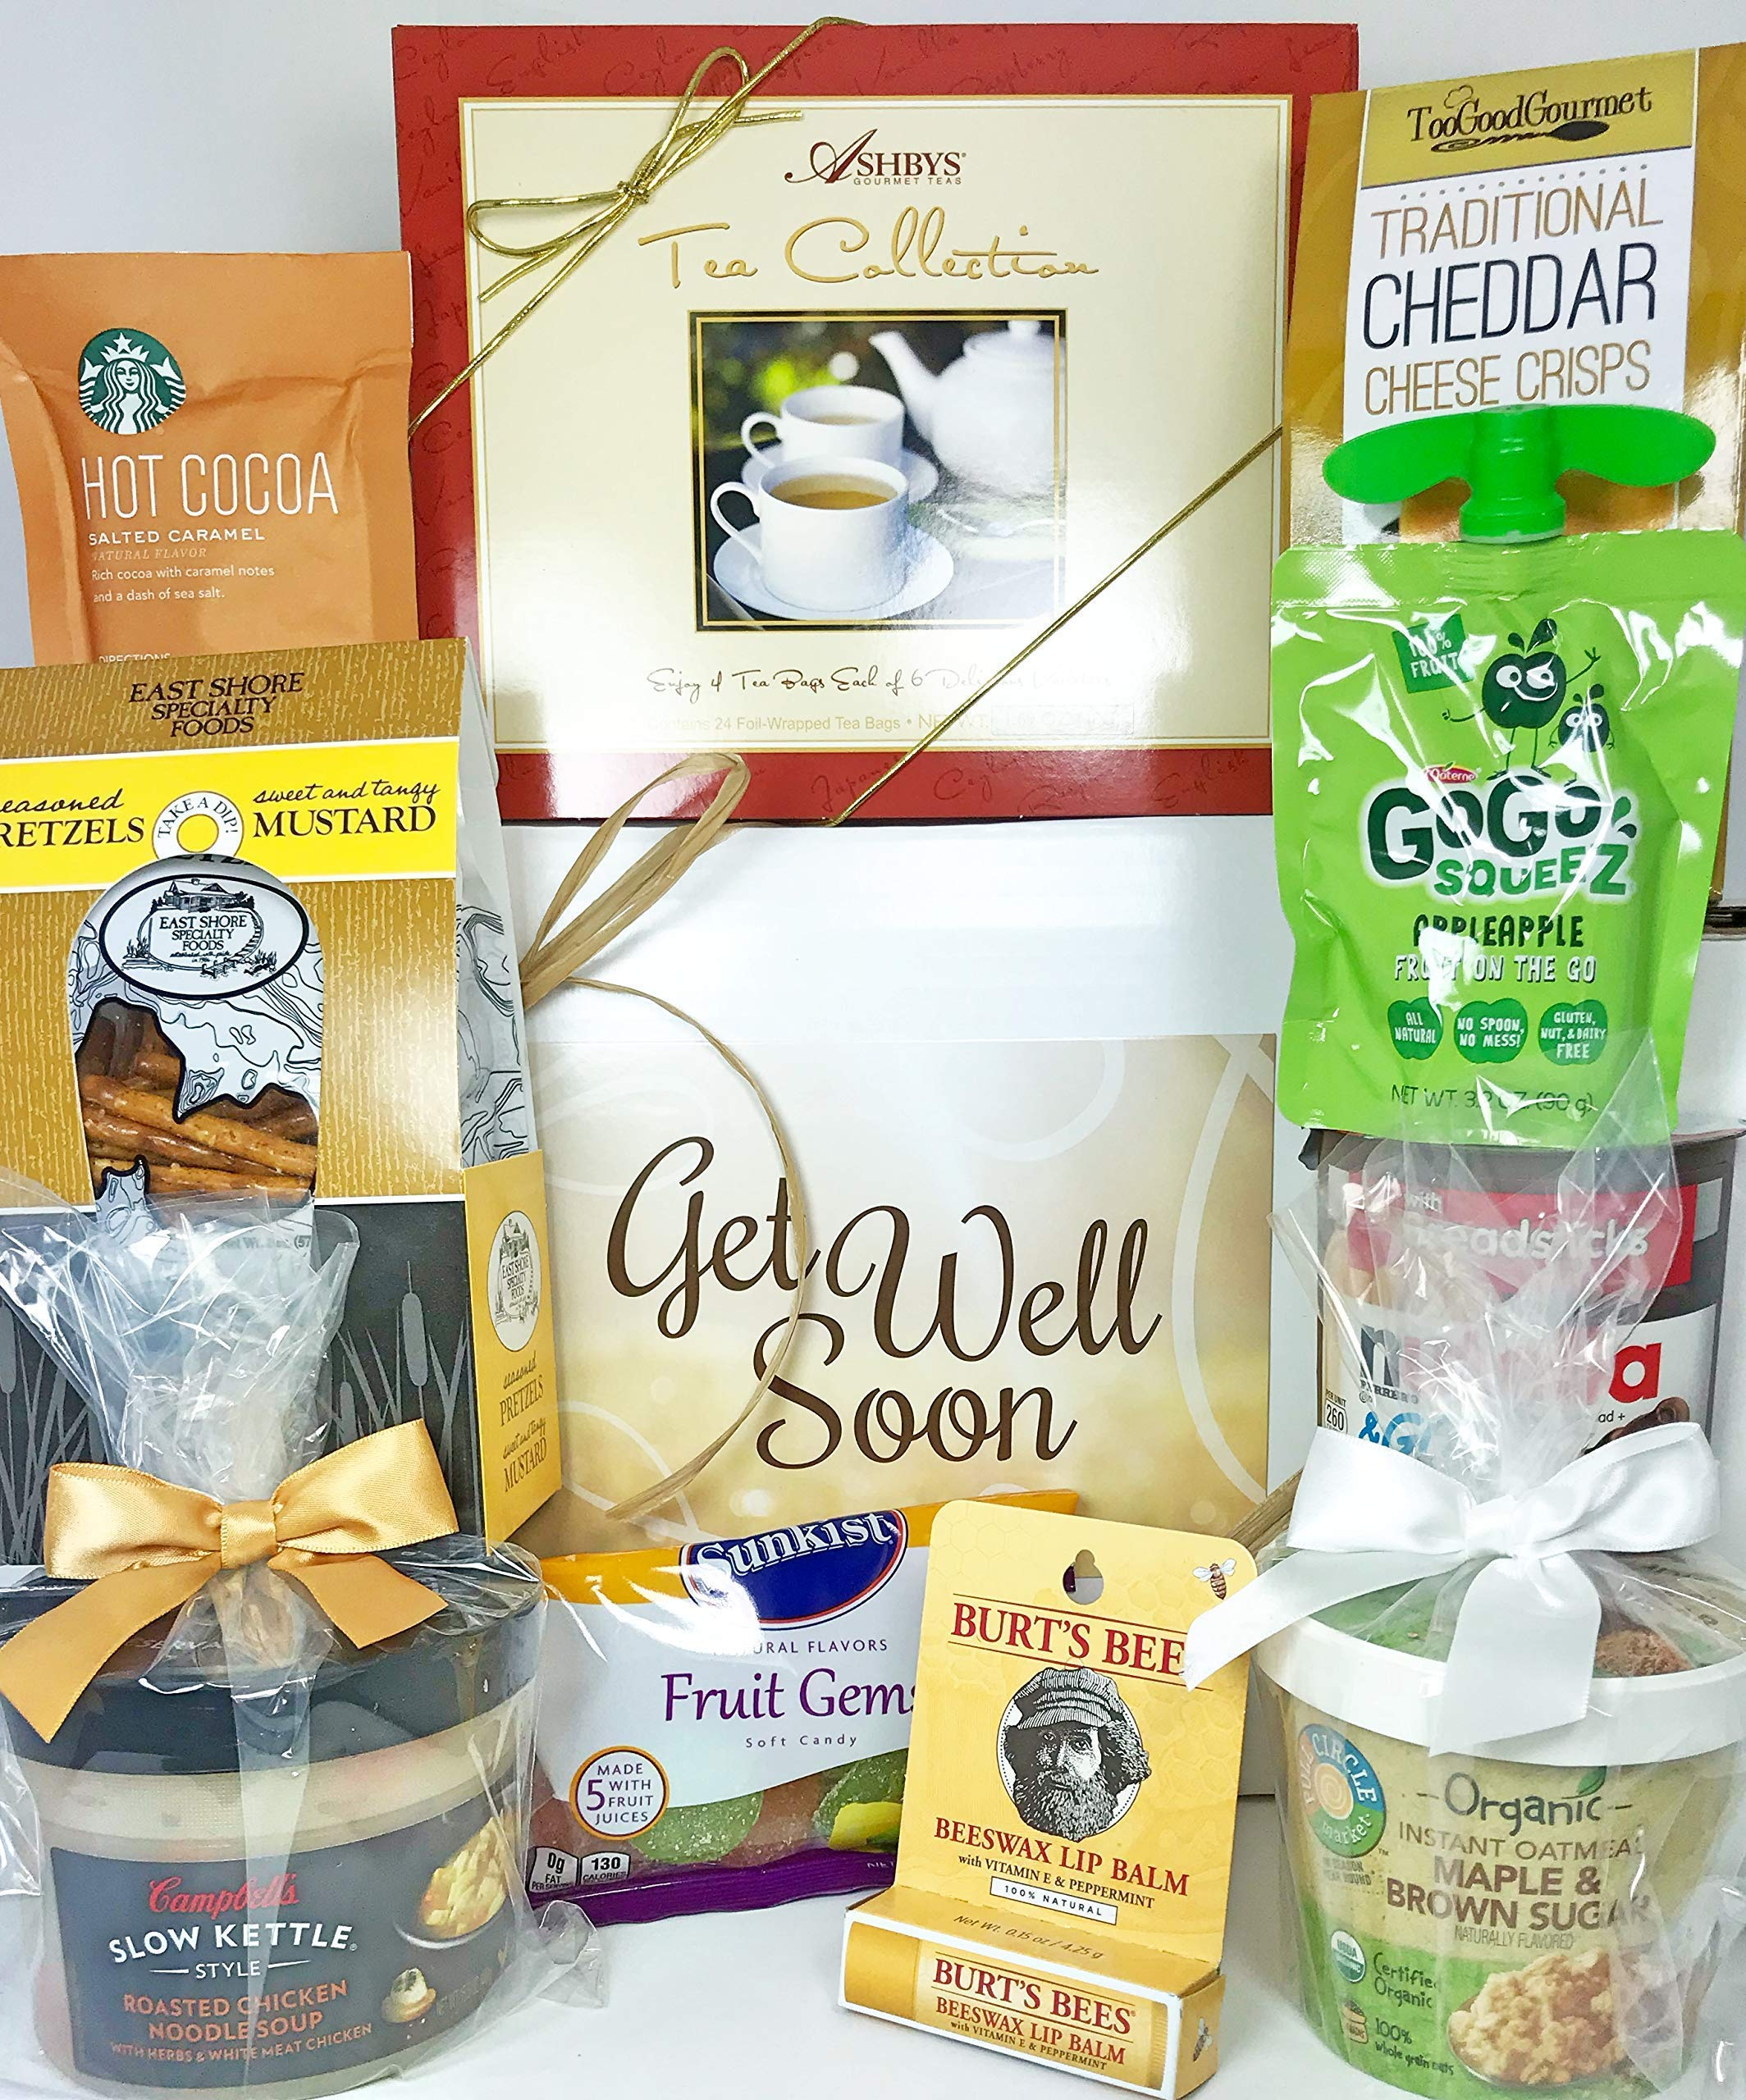 Gourmet Get Well Gift Box Basket - For Cold Flu Illness Surgery Injury- Over 3.5 Pounds of Care, Concern, and Love - Prime Care Package for Men and Women - Send a Smile Today! by Specialty Gift Boxes (Image #1)